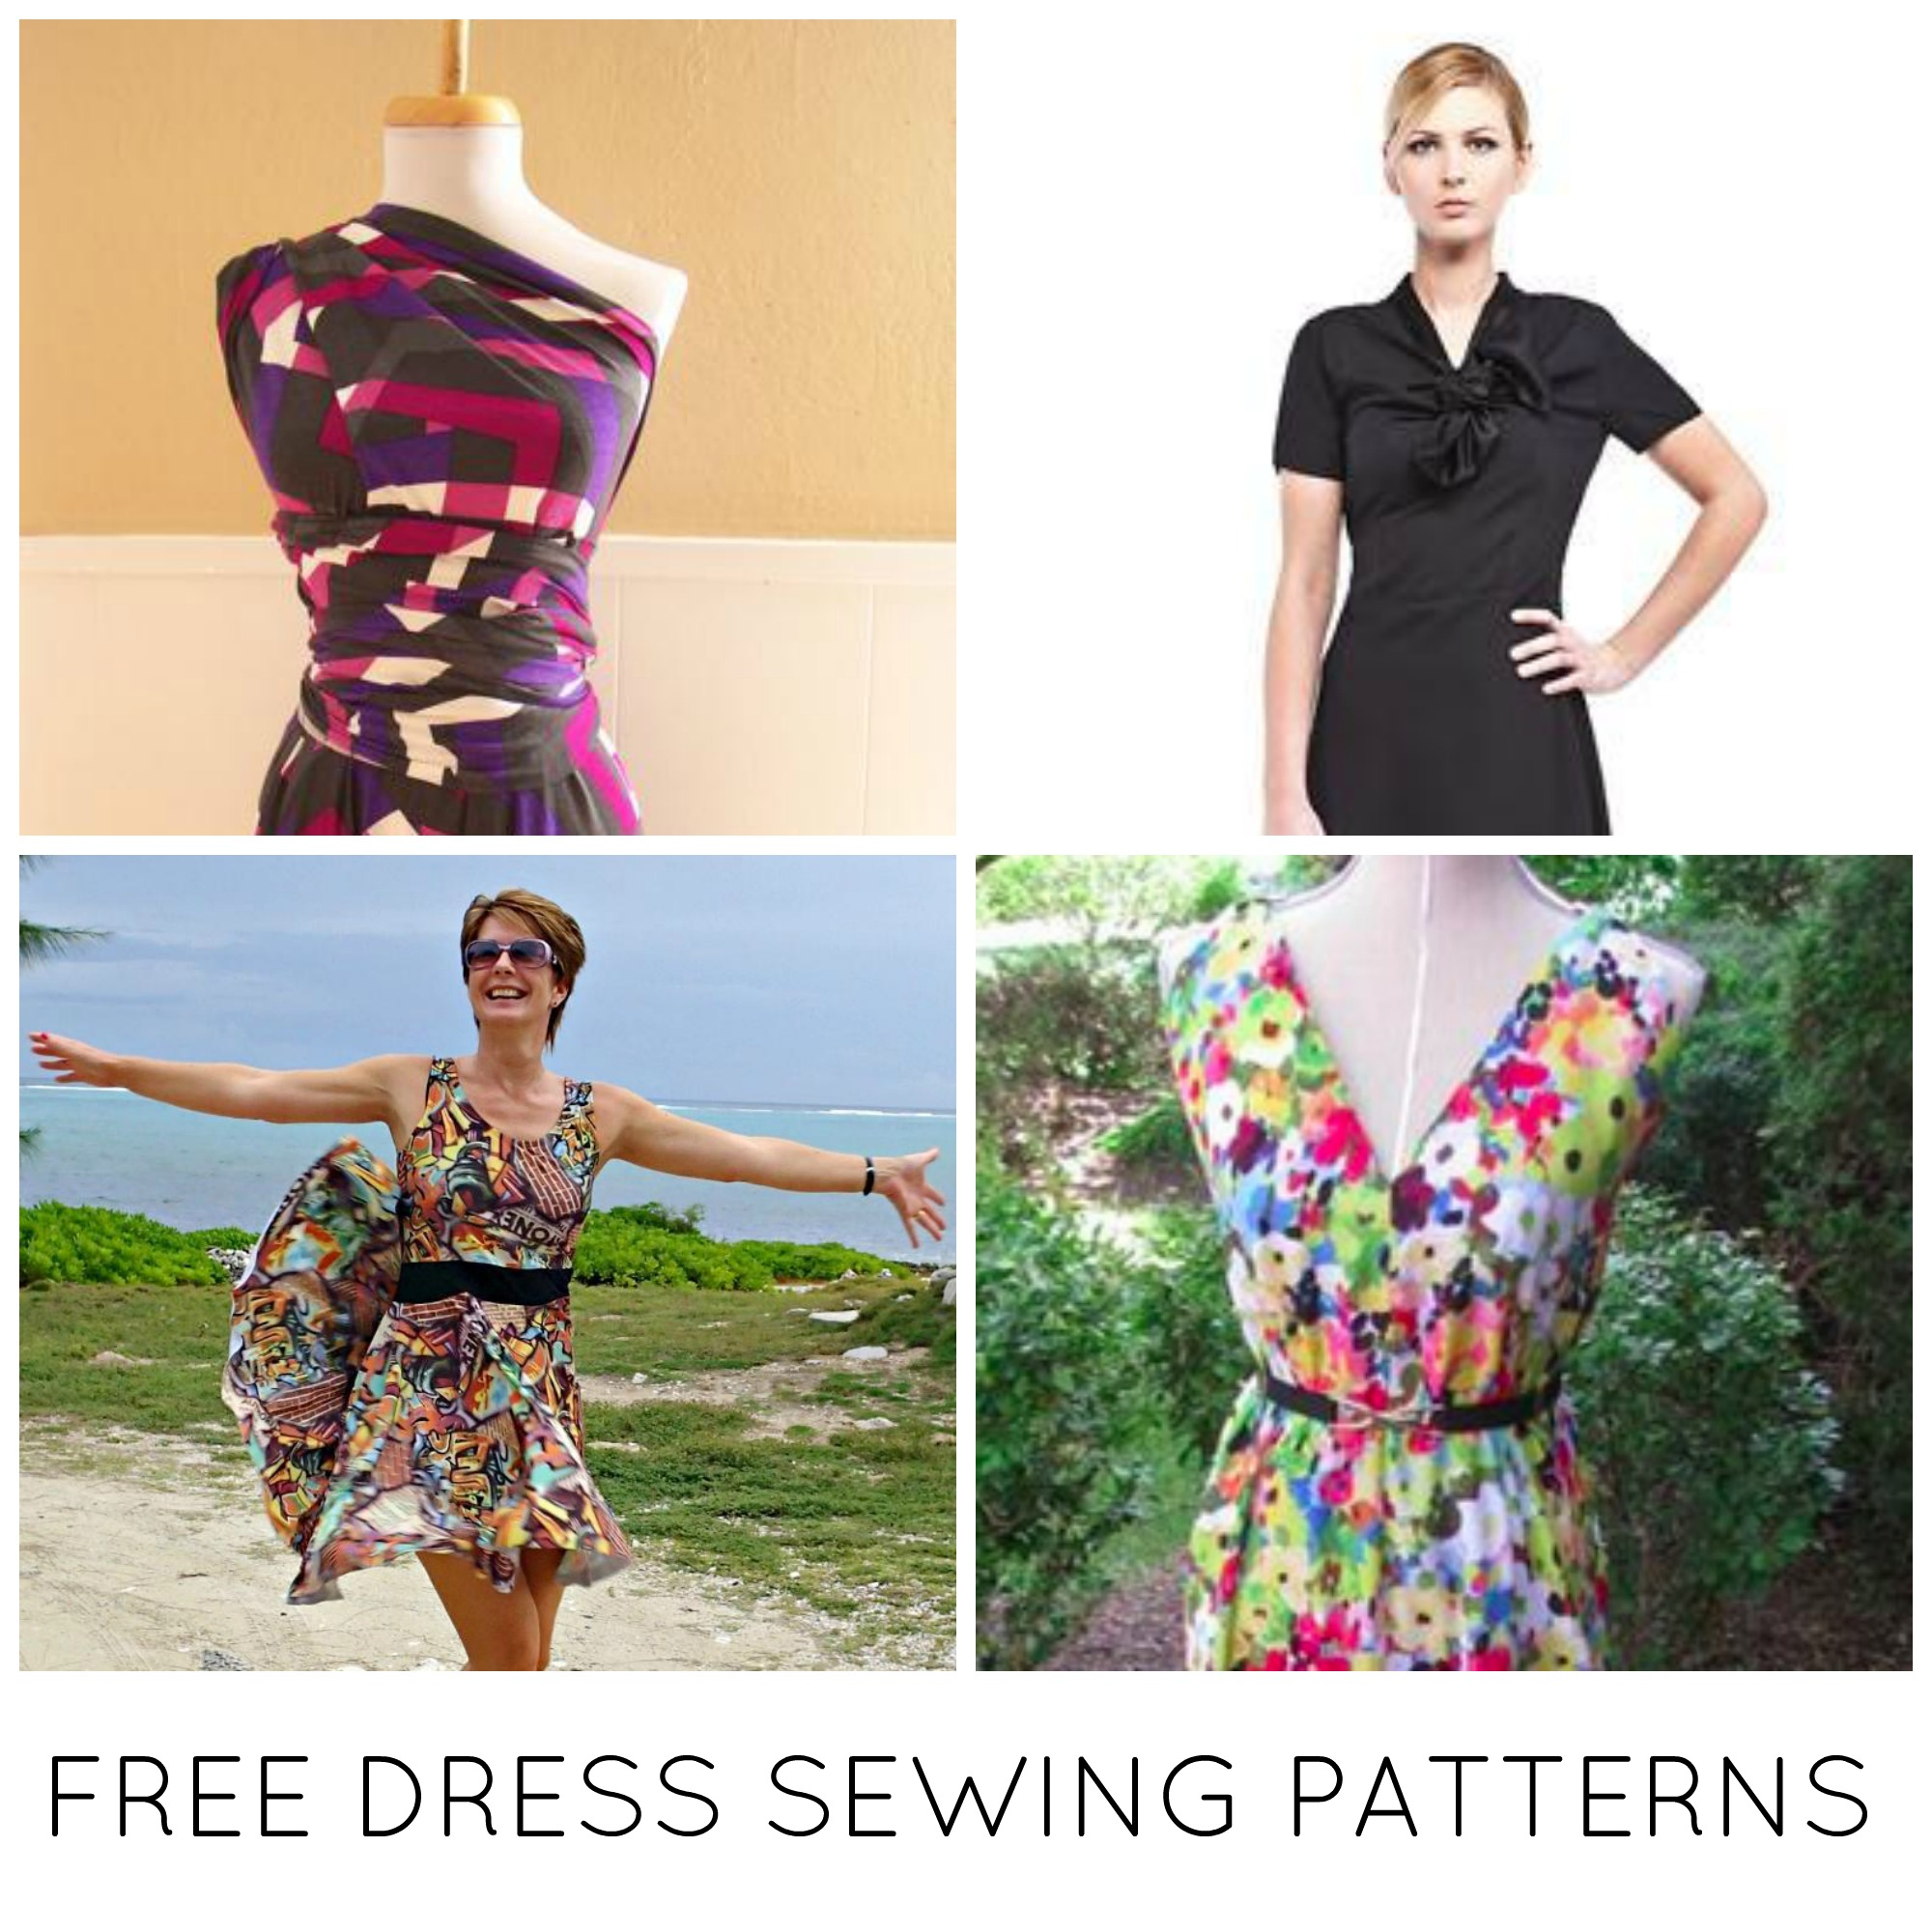 Sewing Patterns For Beginners 10 Free Dress Sewing Patterns Youll Love